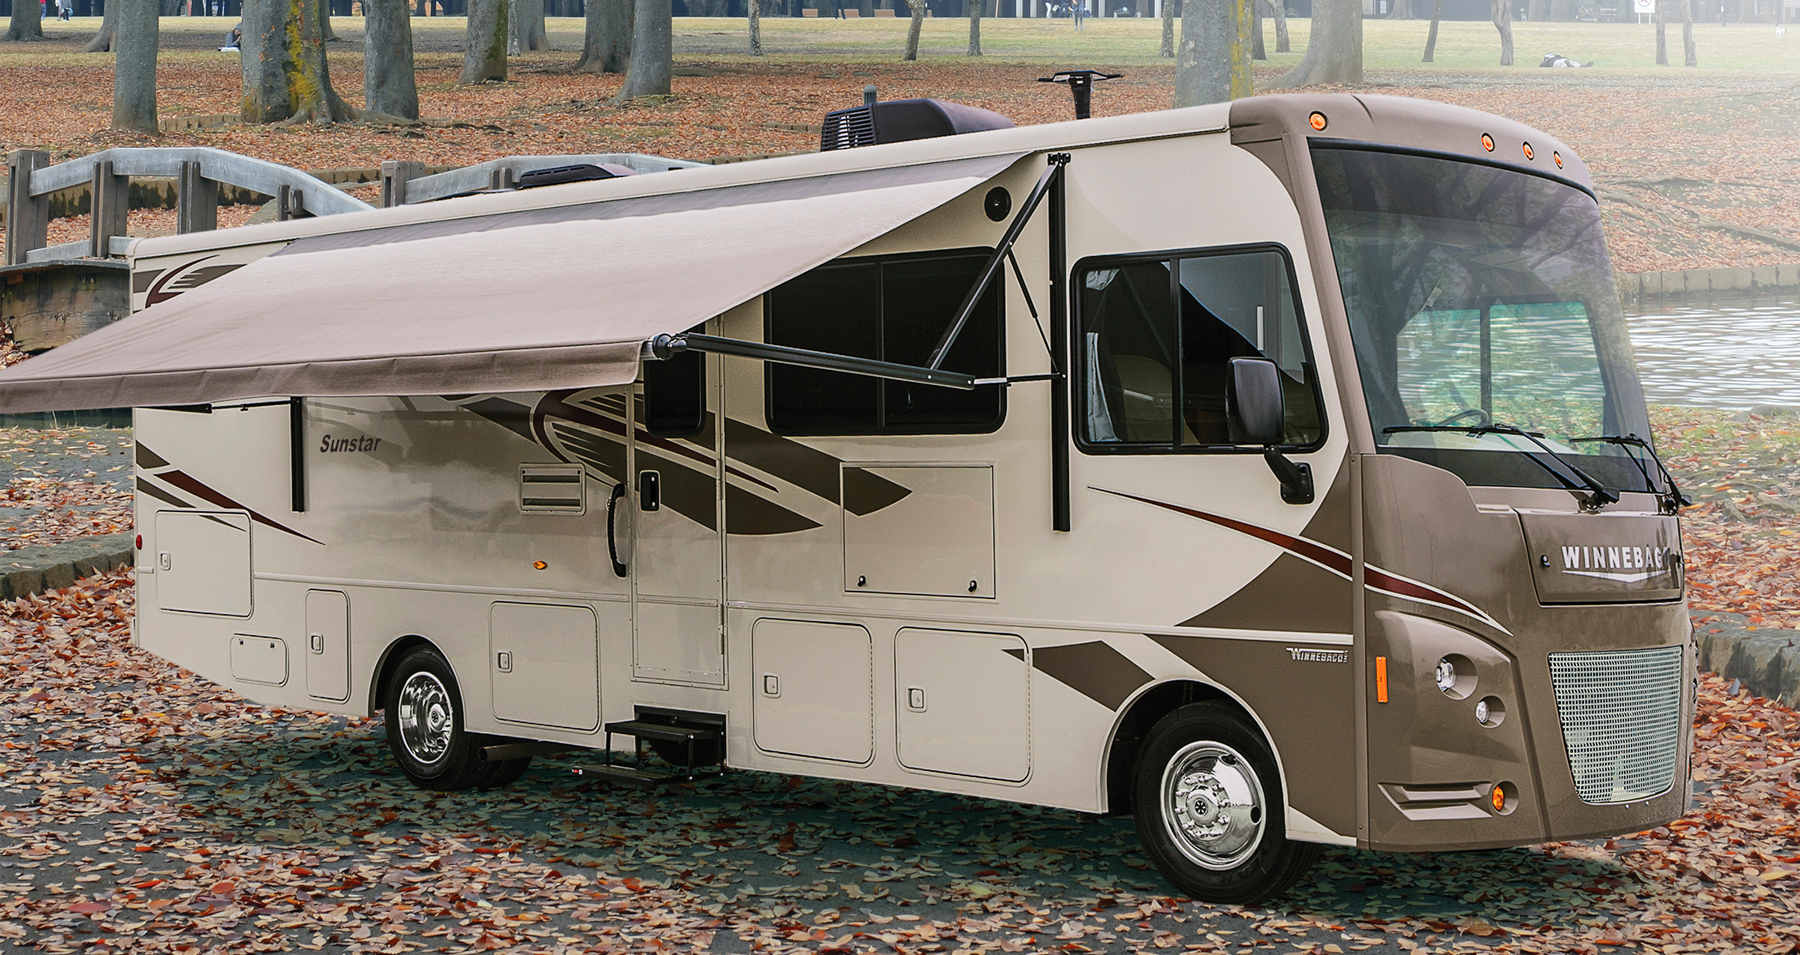 winnebago motorhomes honeywell frost stat wiring diagram sunstar 29ve a motorhome for the whole family